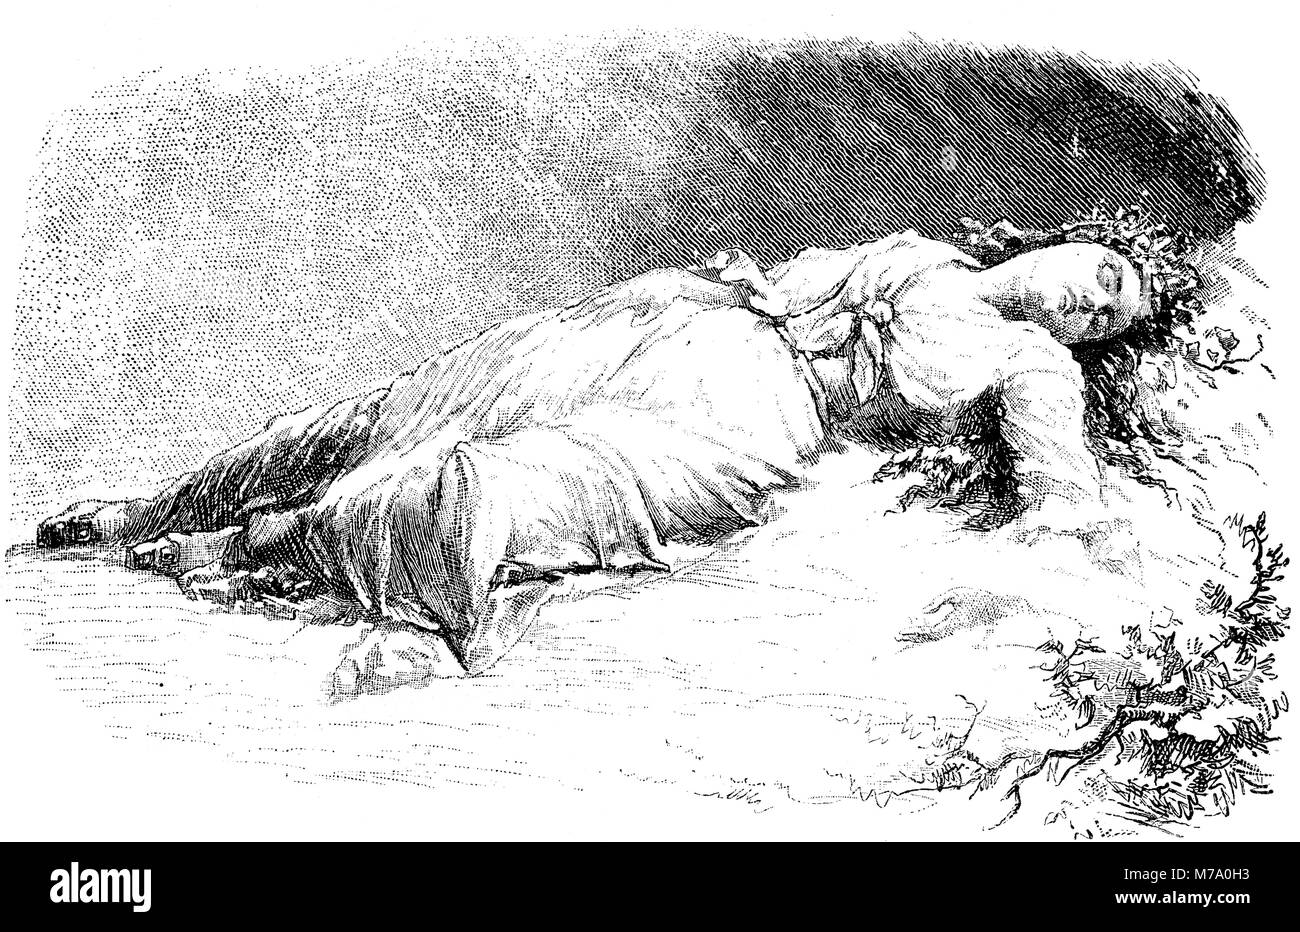 Sleeping beauty, romantic vintage engraving - Stock Image